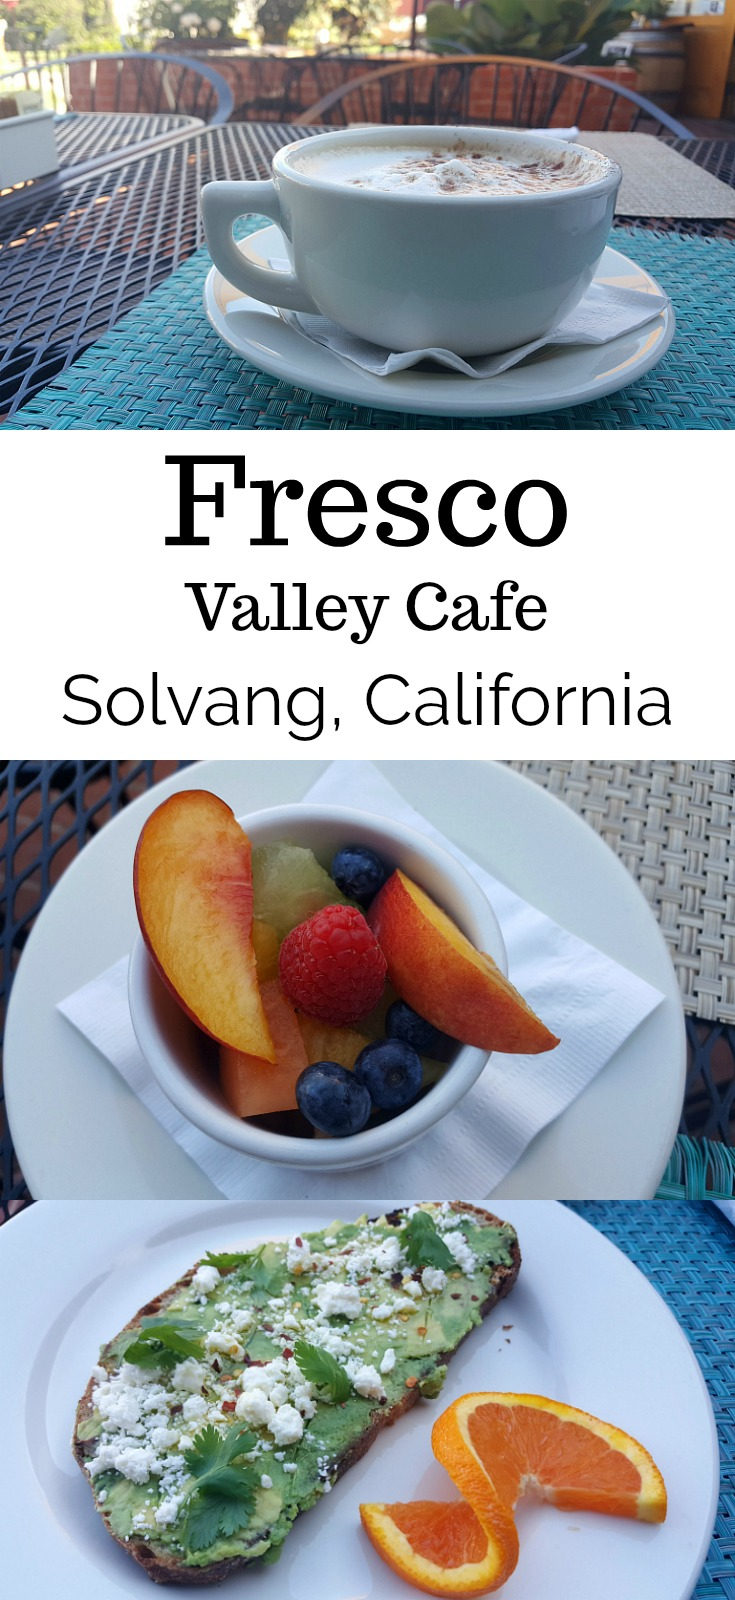 Breakfast at Fresco Valley Cafe in Solvang USA